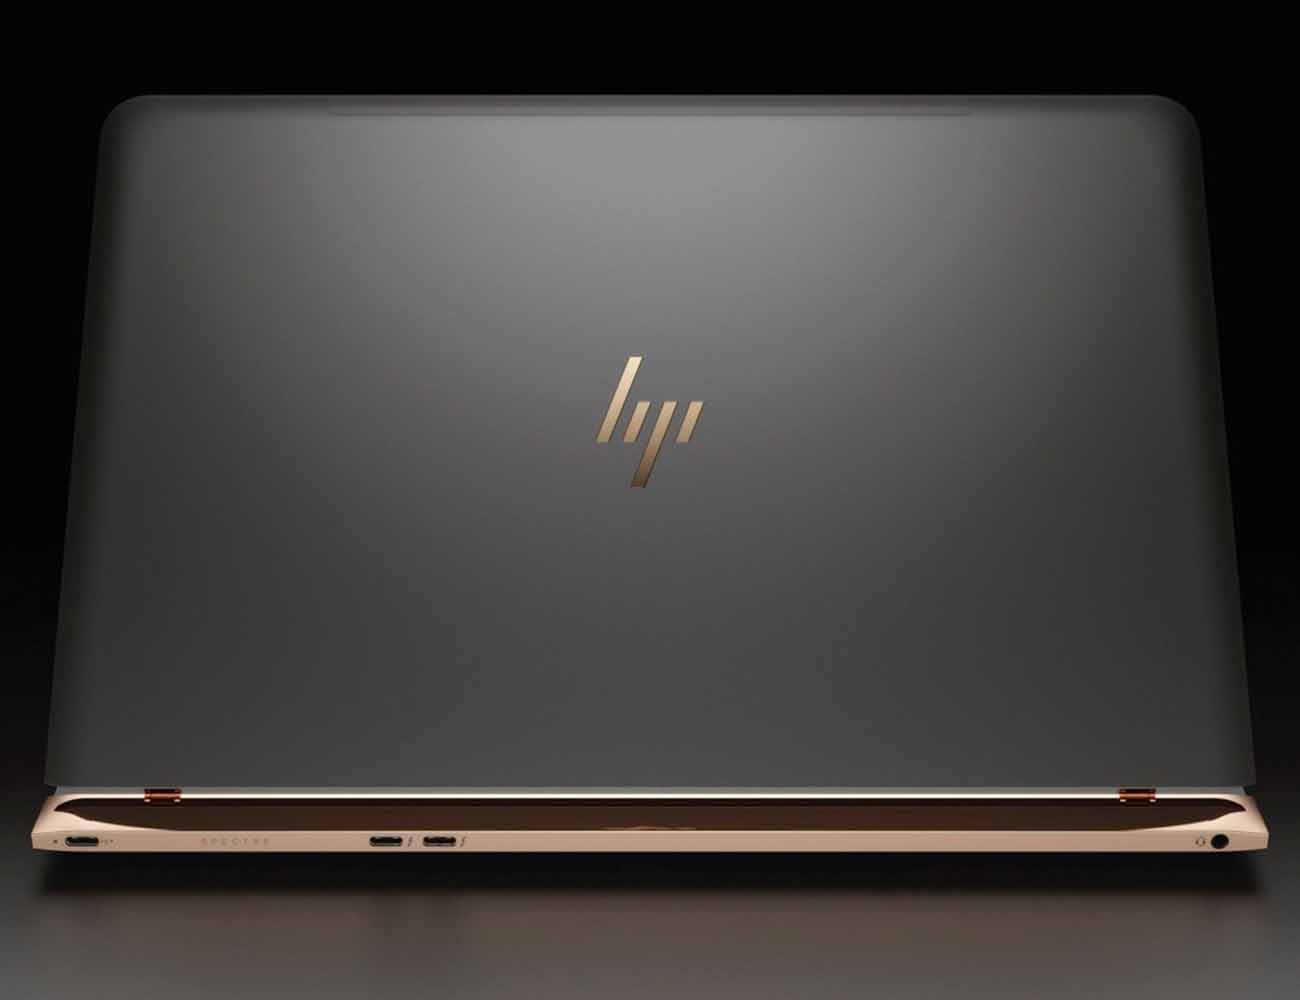 HP Spectre – The World's Thinnest Laptop